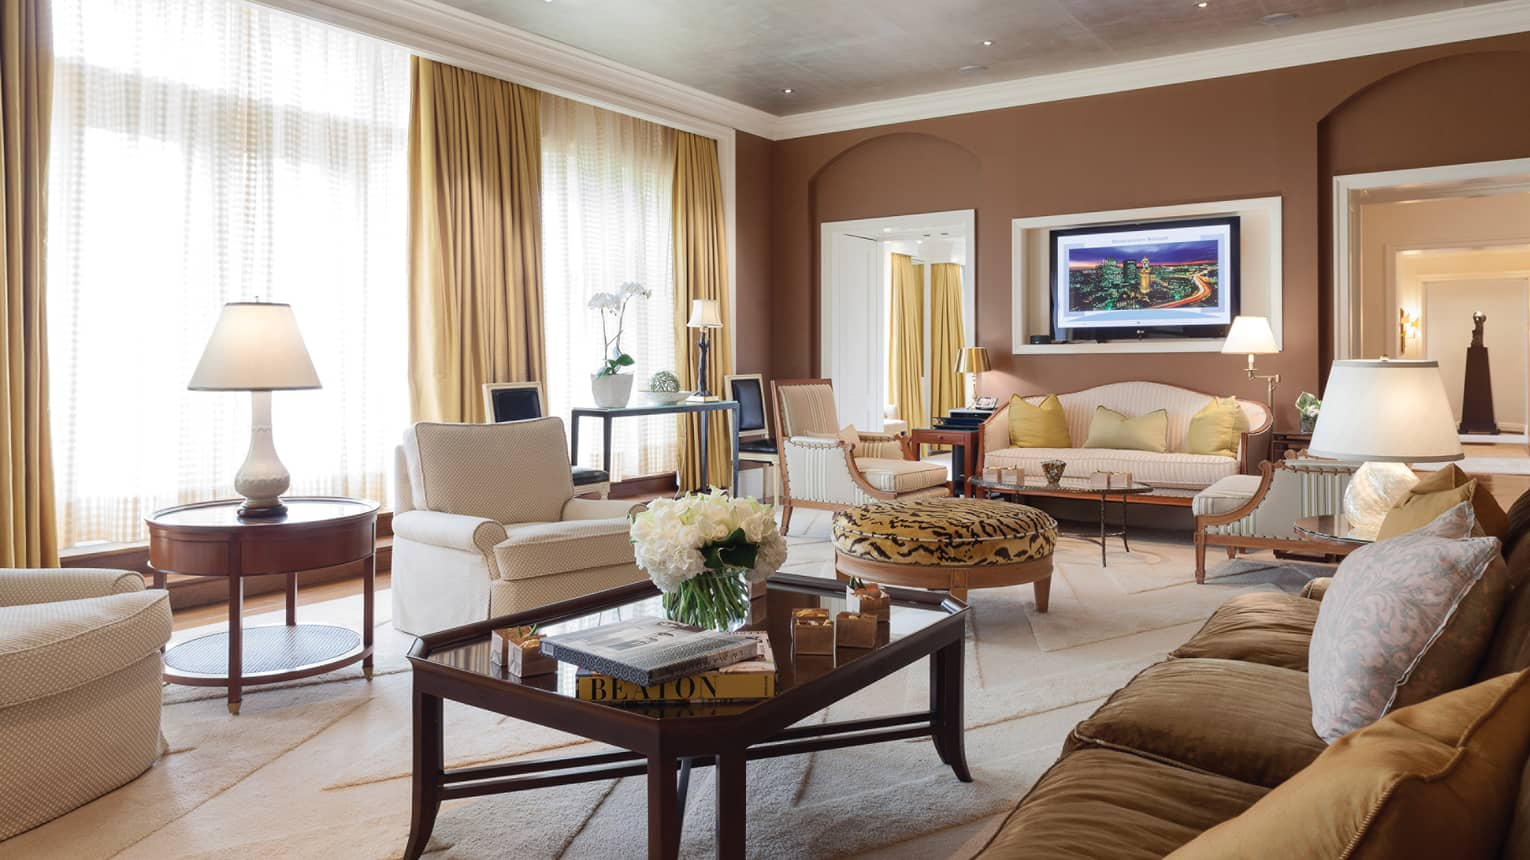 Presidential Suite living area coffee table with books and fresh white flowers, white armchair, tiger-print ottoman, sofas